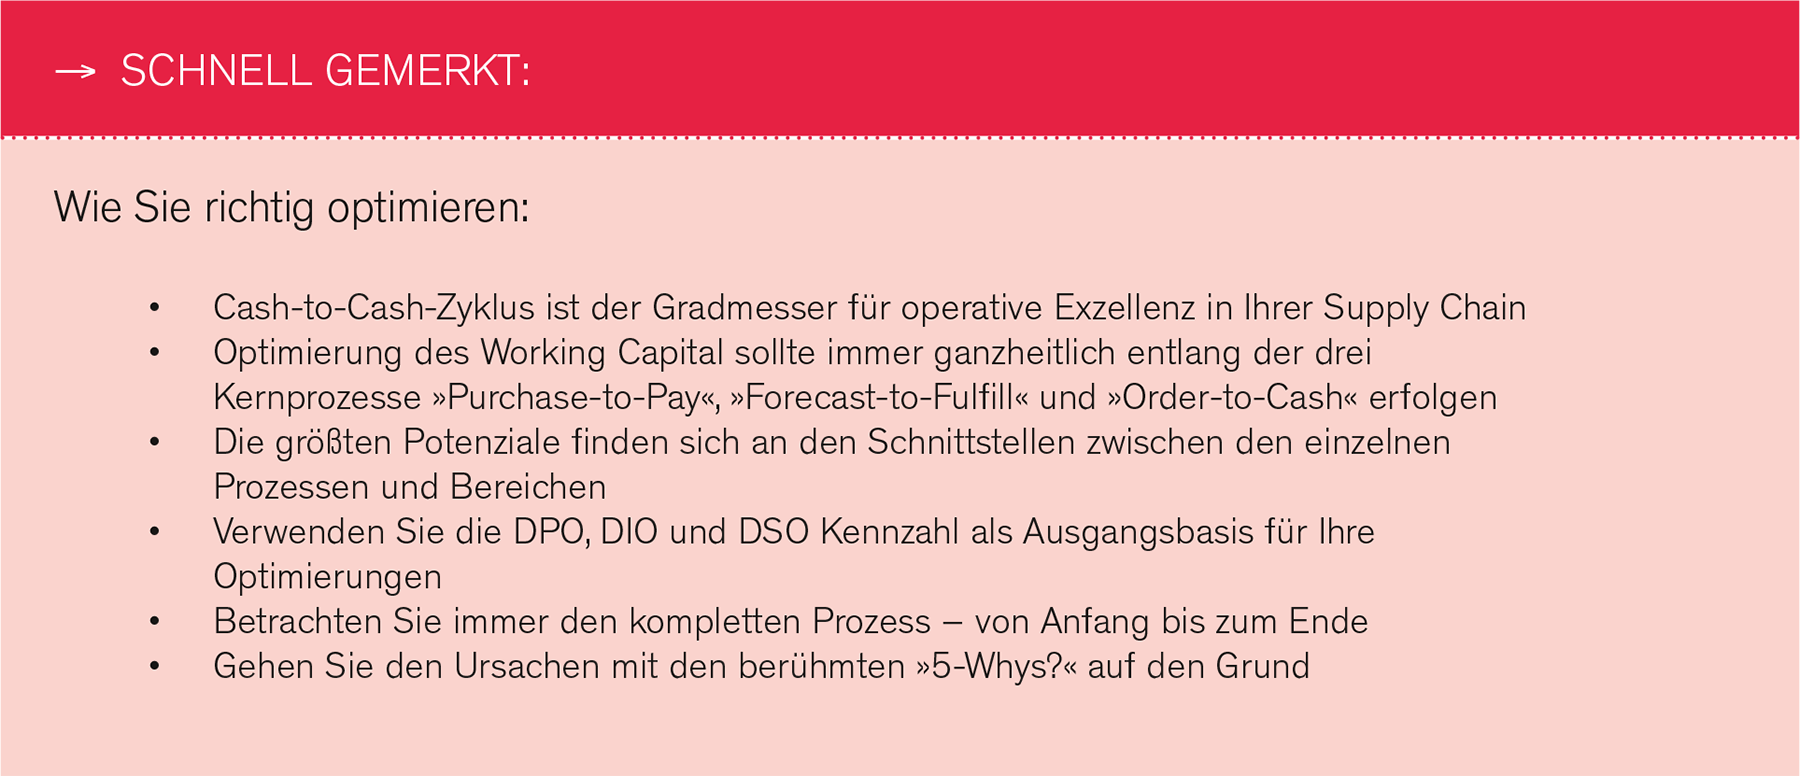 working-capital-management-machen-sie-es-richtig_SHS180403_2018-01-Working-Capital-Management-4@2x